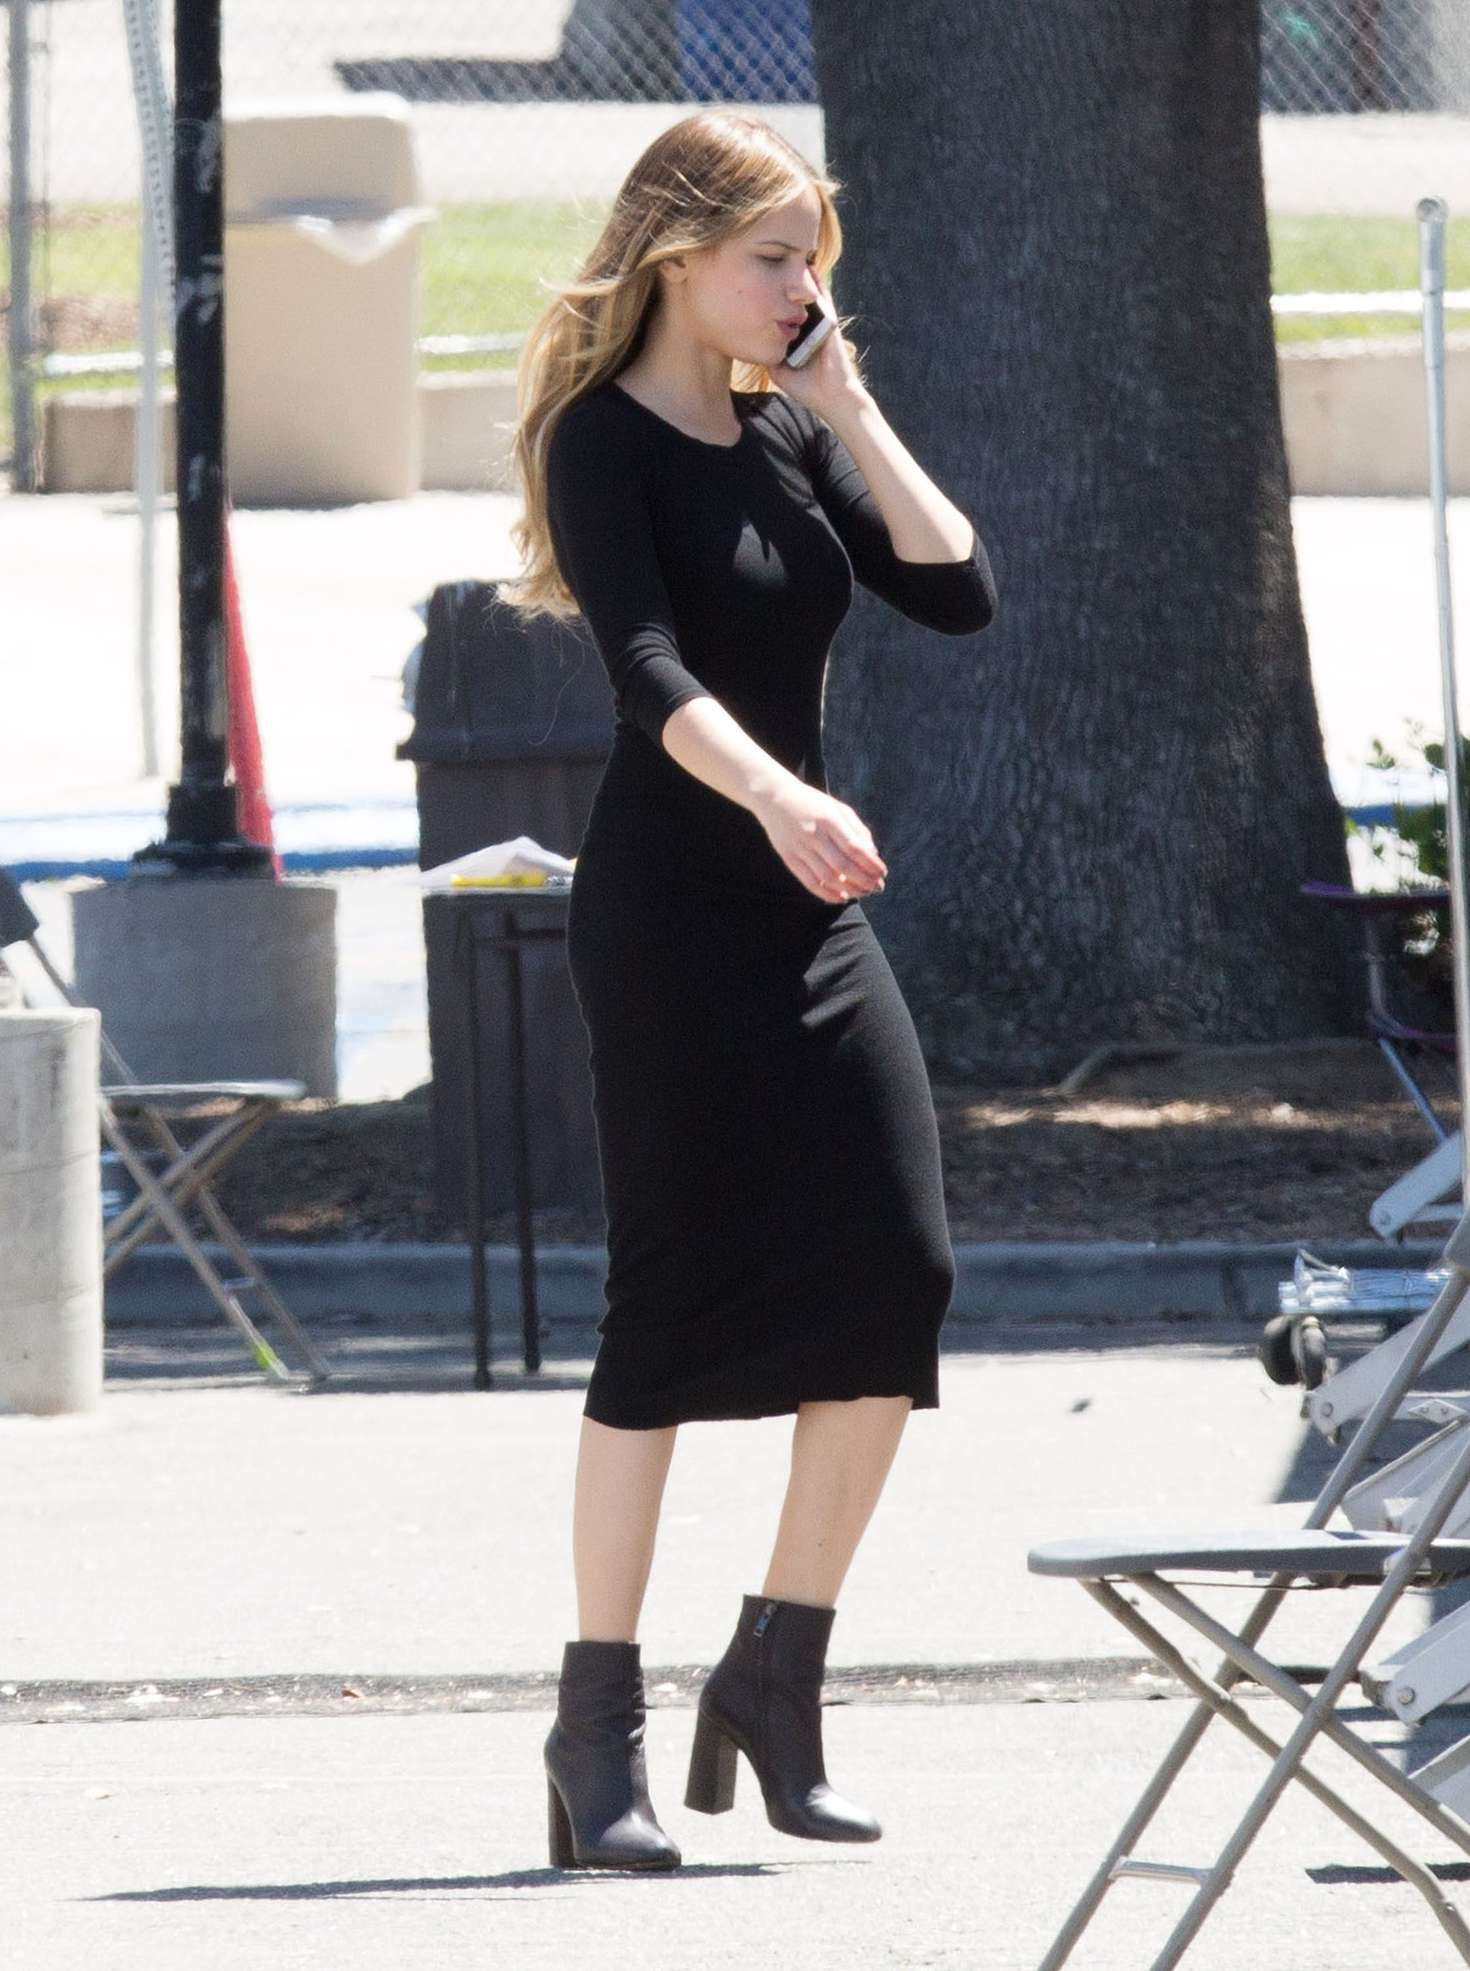 Halston Sage In Jeans Filming You Get Me 02 Gotceleb